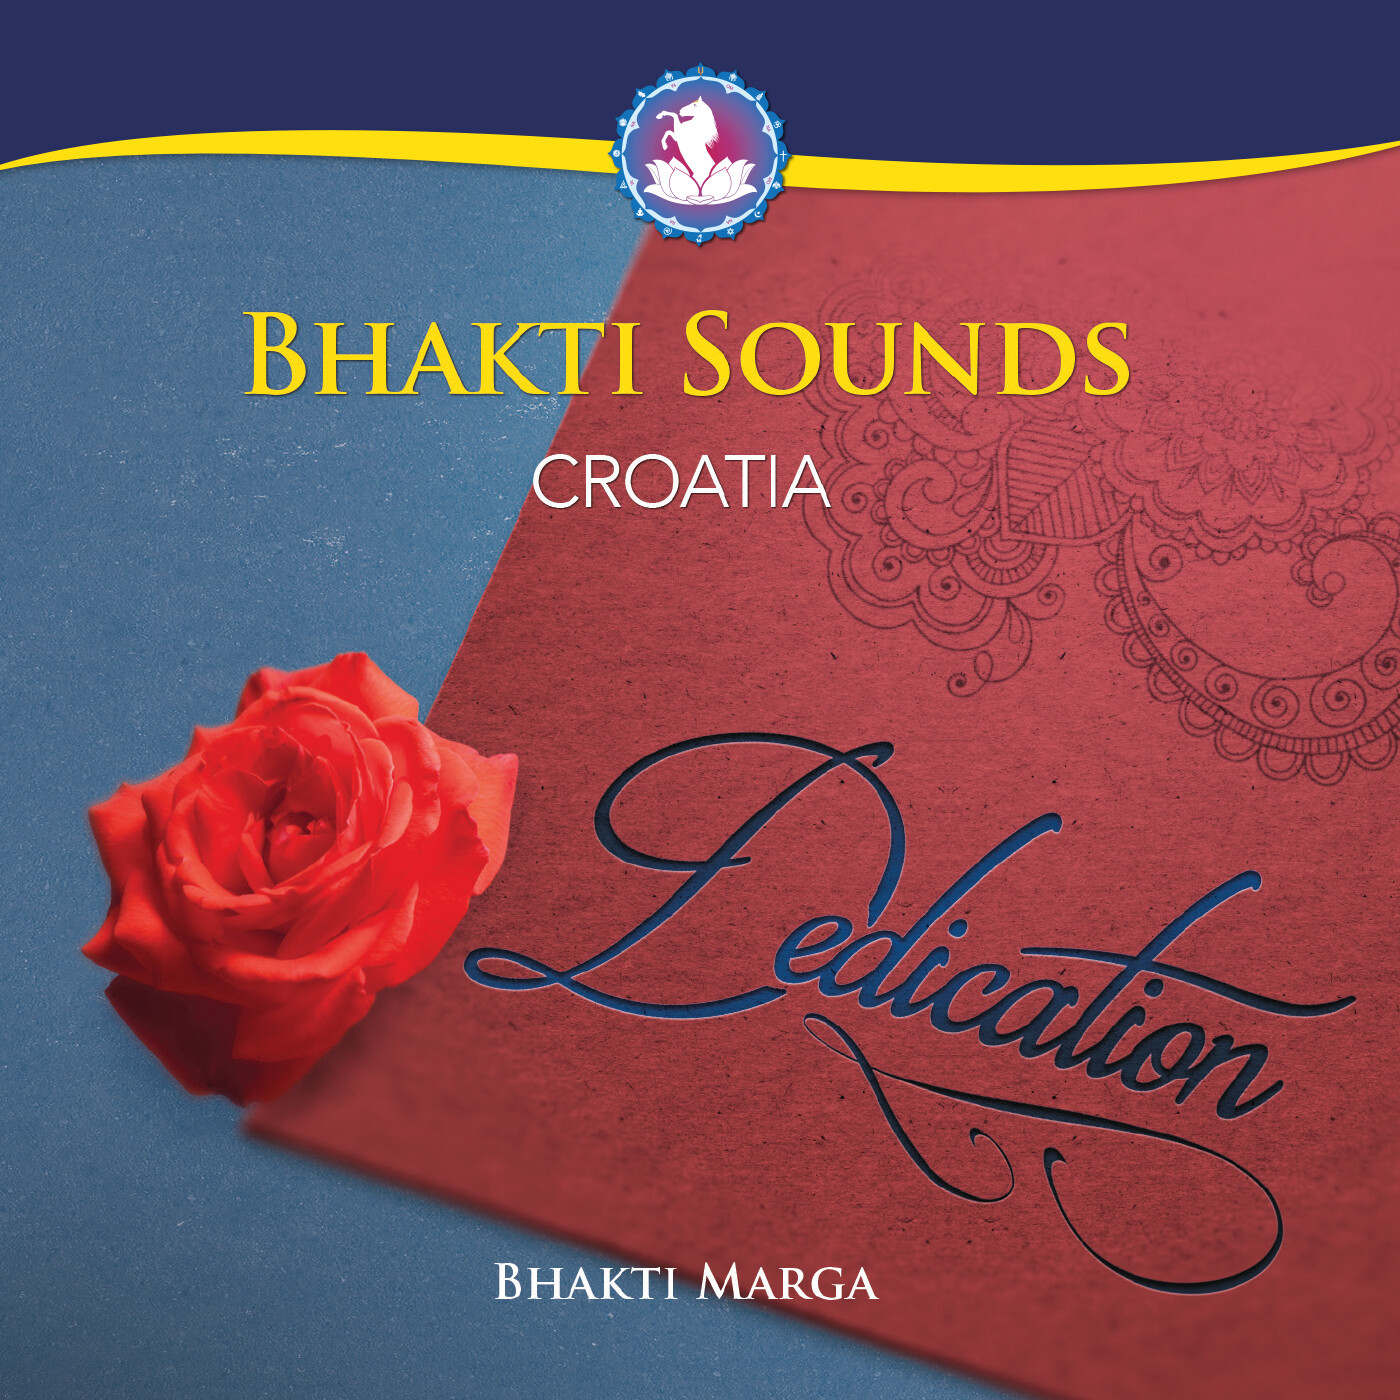 Bhakti Sounds Croatia: Dedication